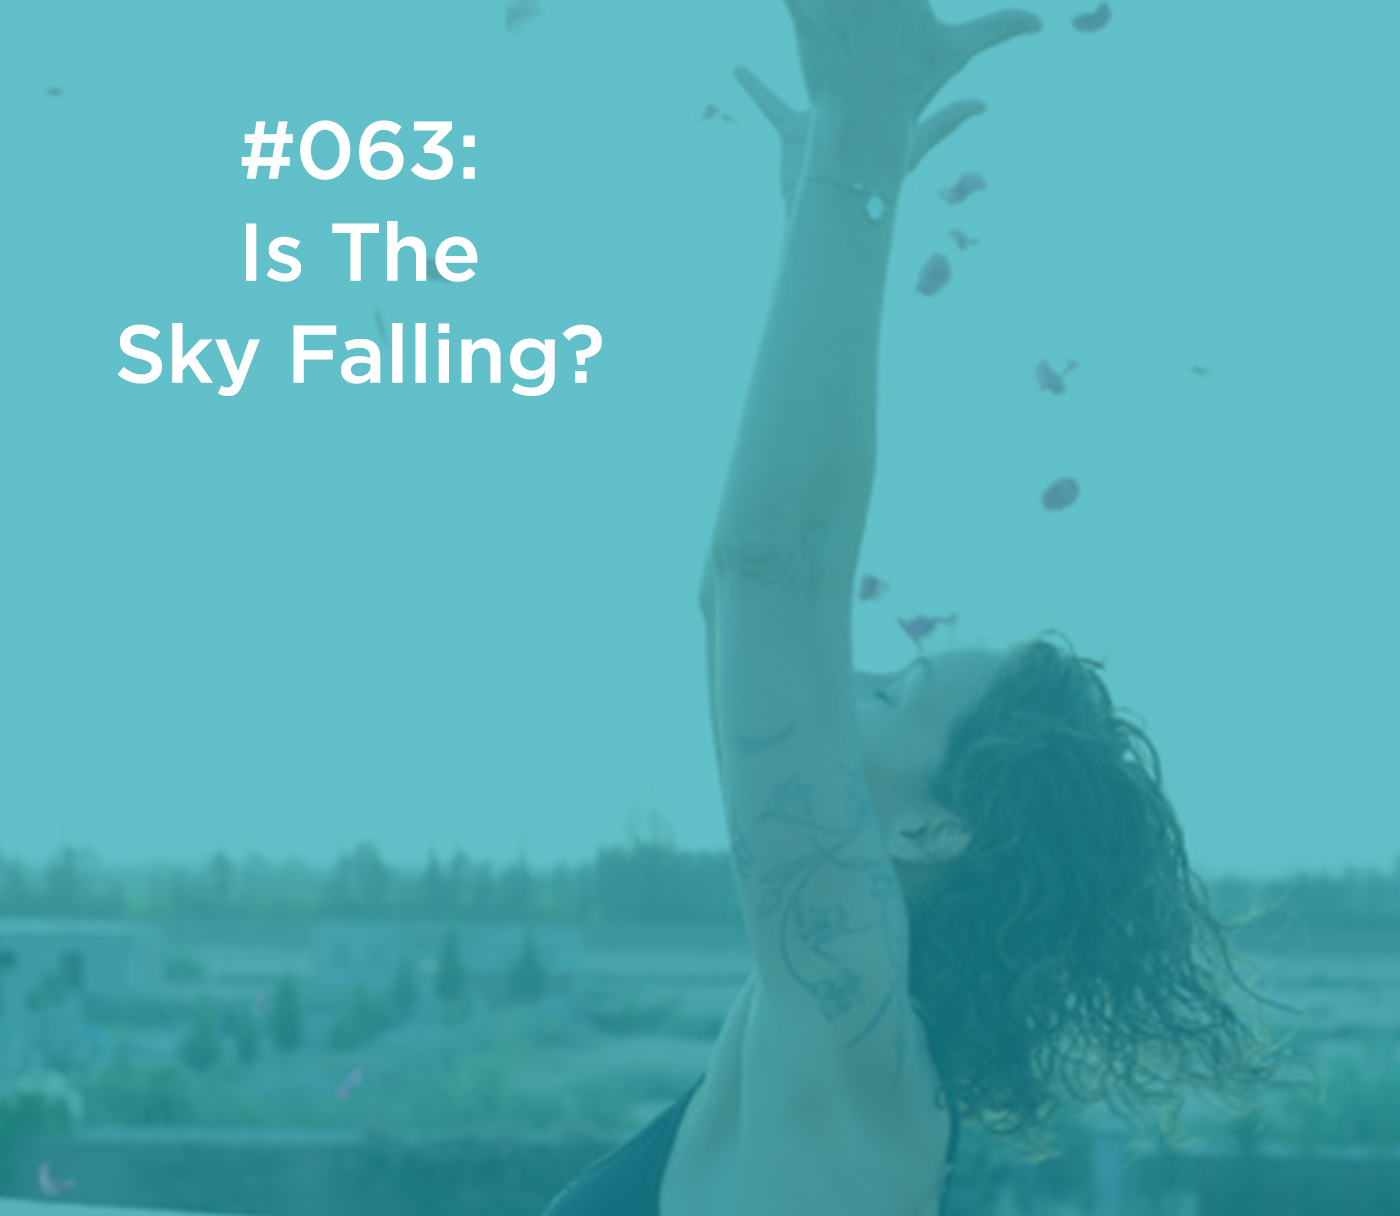 Is The Sky Falling?